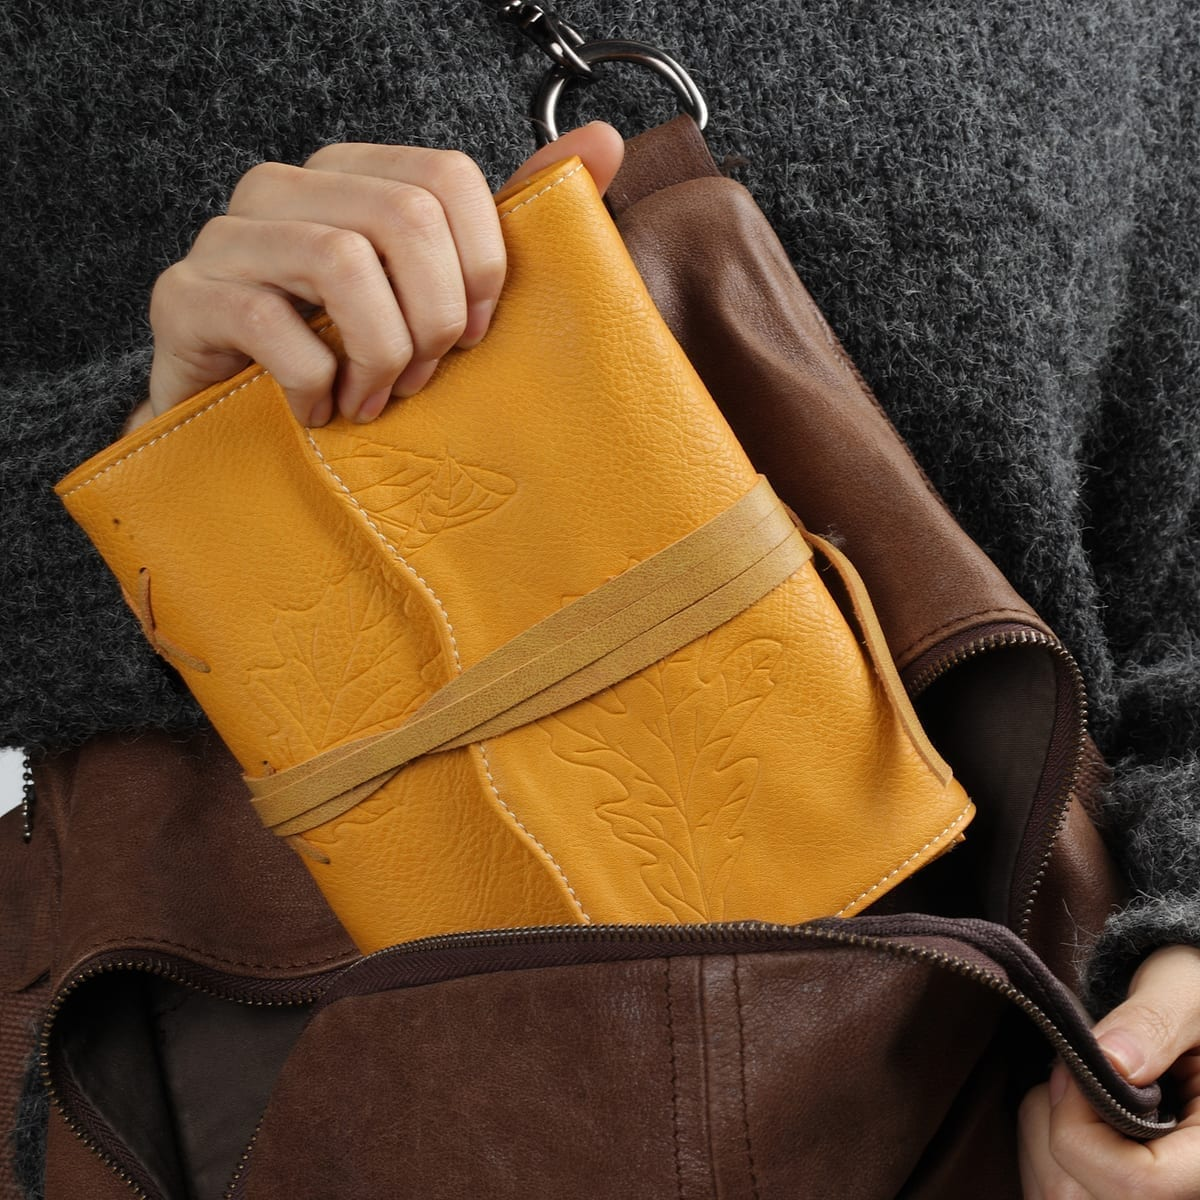 putting yellow leather journal in a backpack